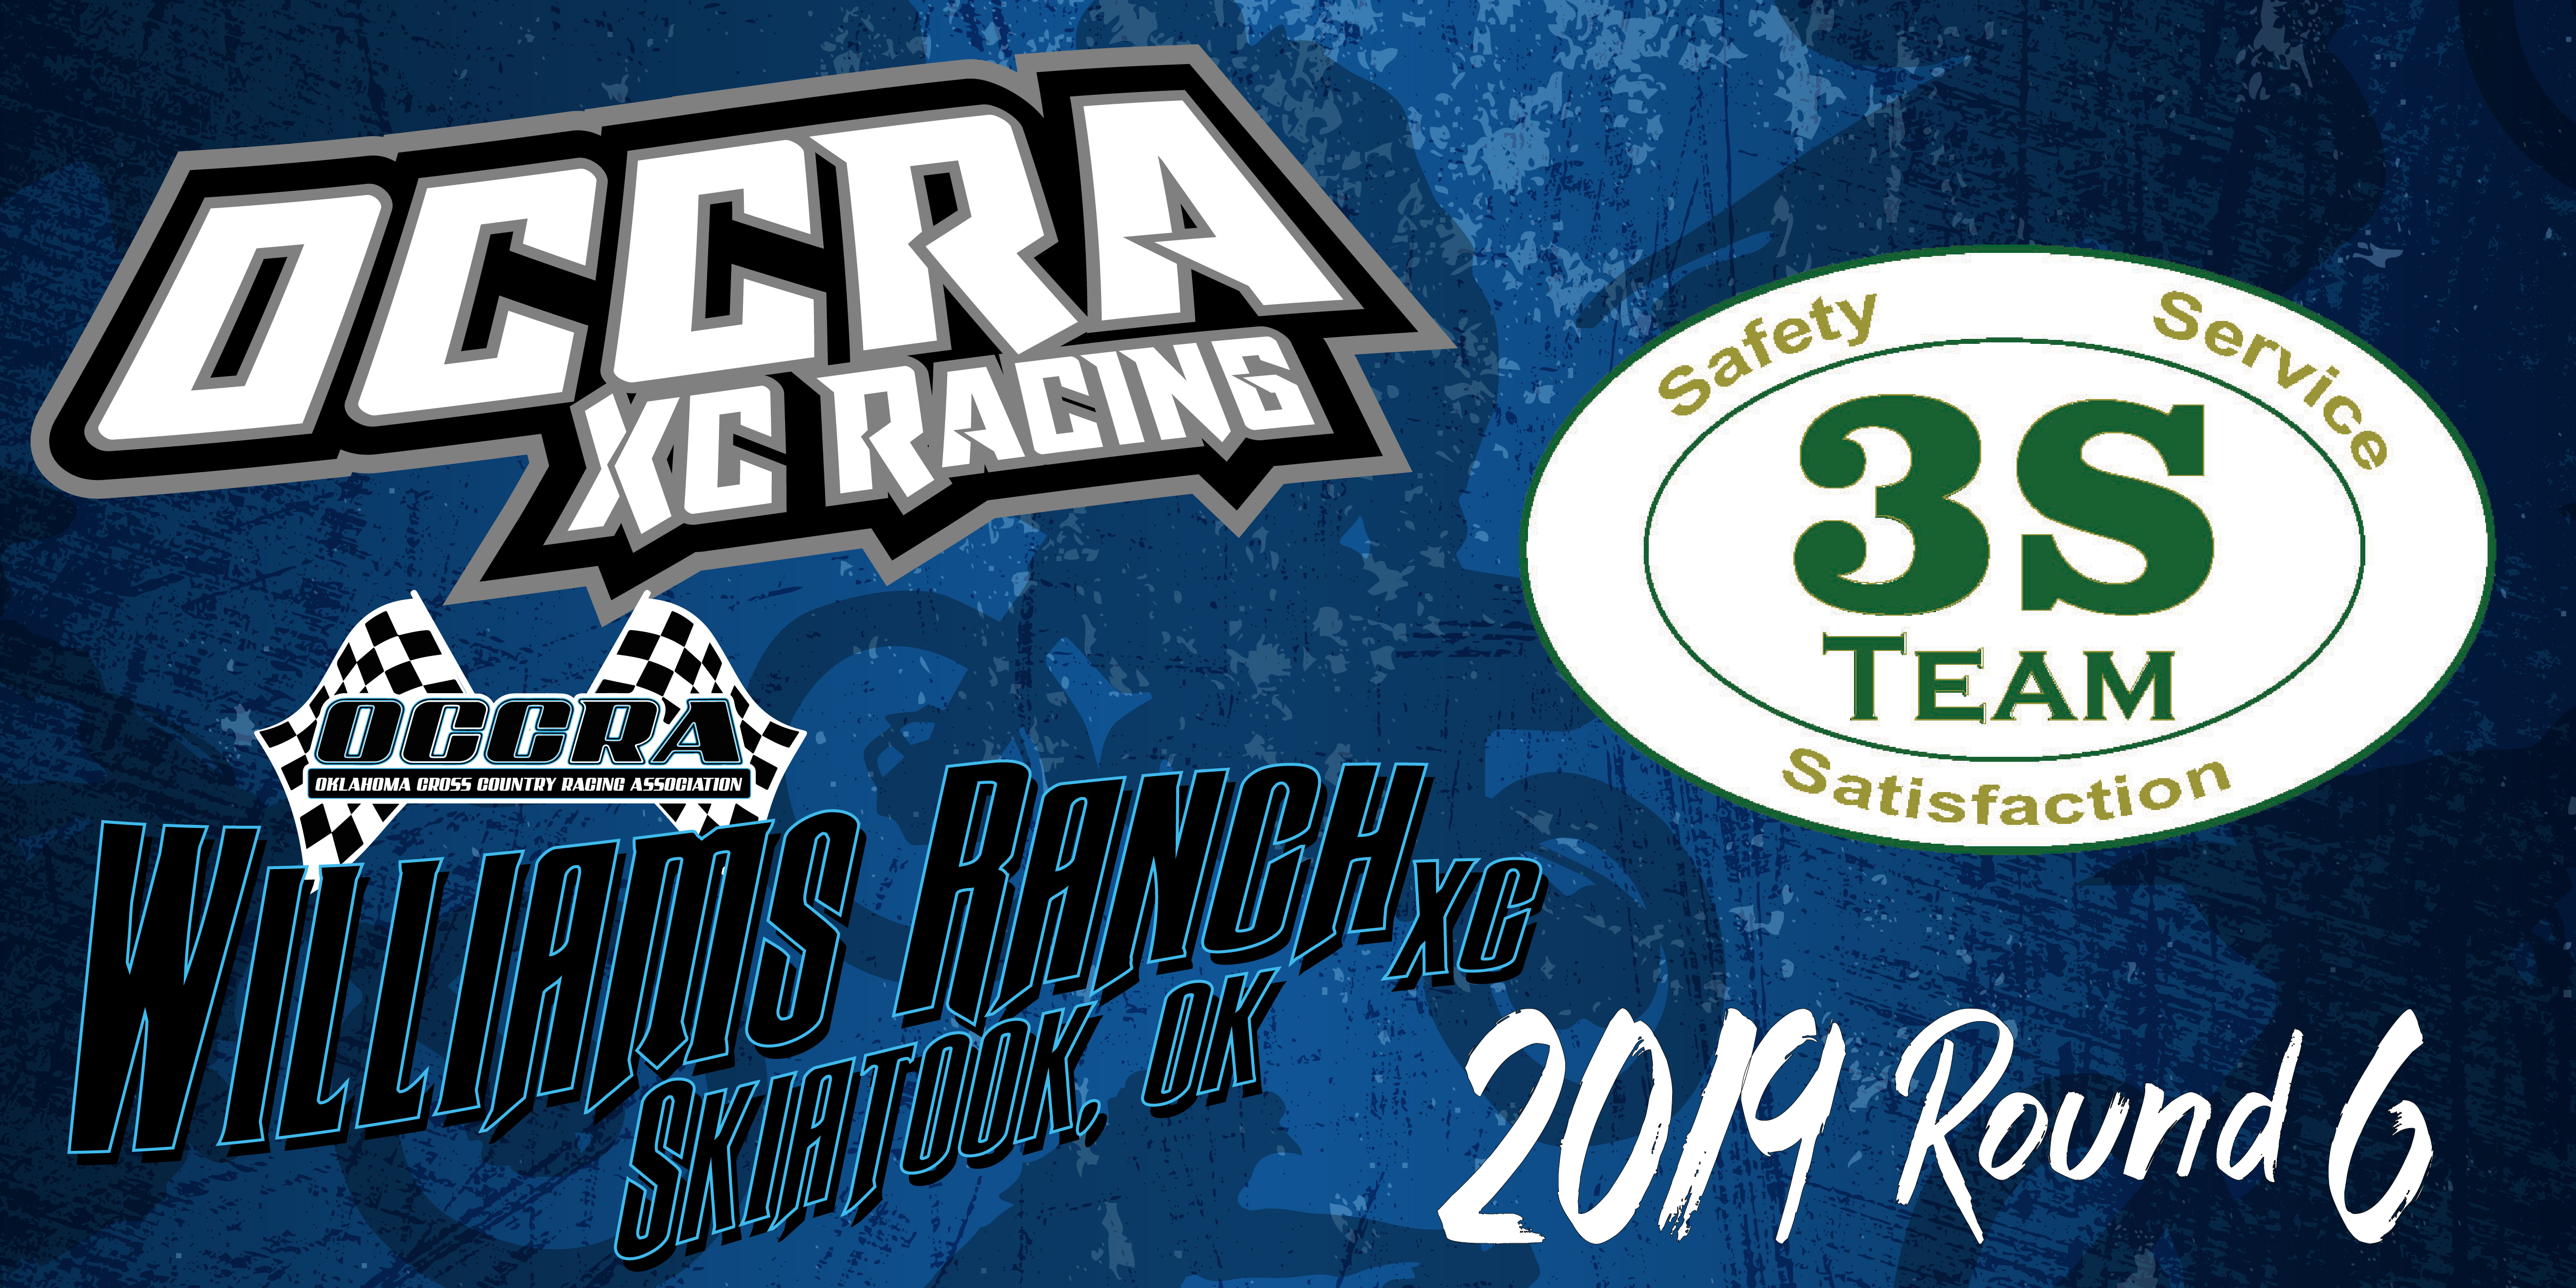 Ready to Rock Round 6 at Williams Ranch